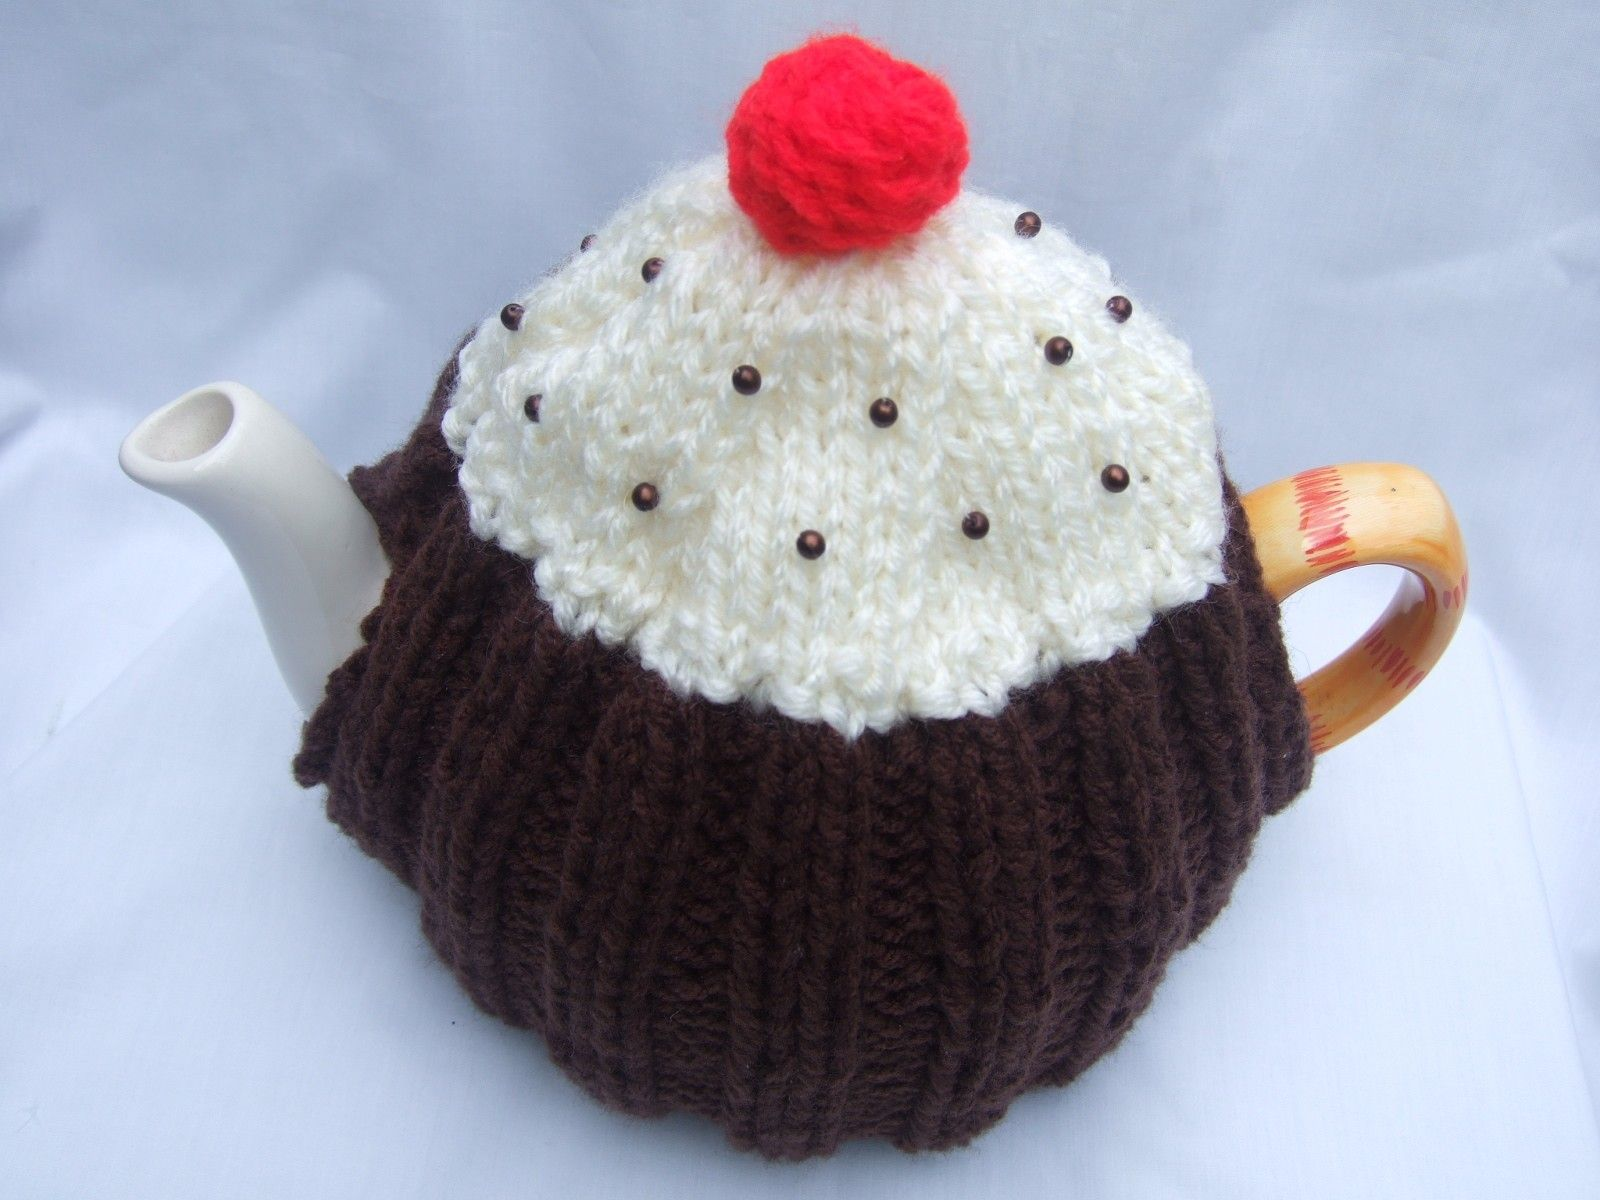 tea cosies knitting patterns free - Google Search | Brei-werk ...